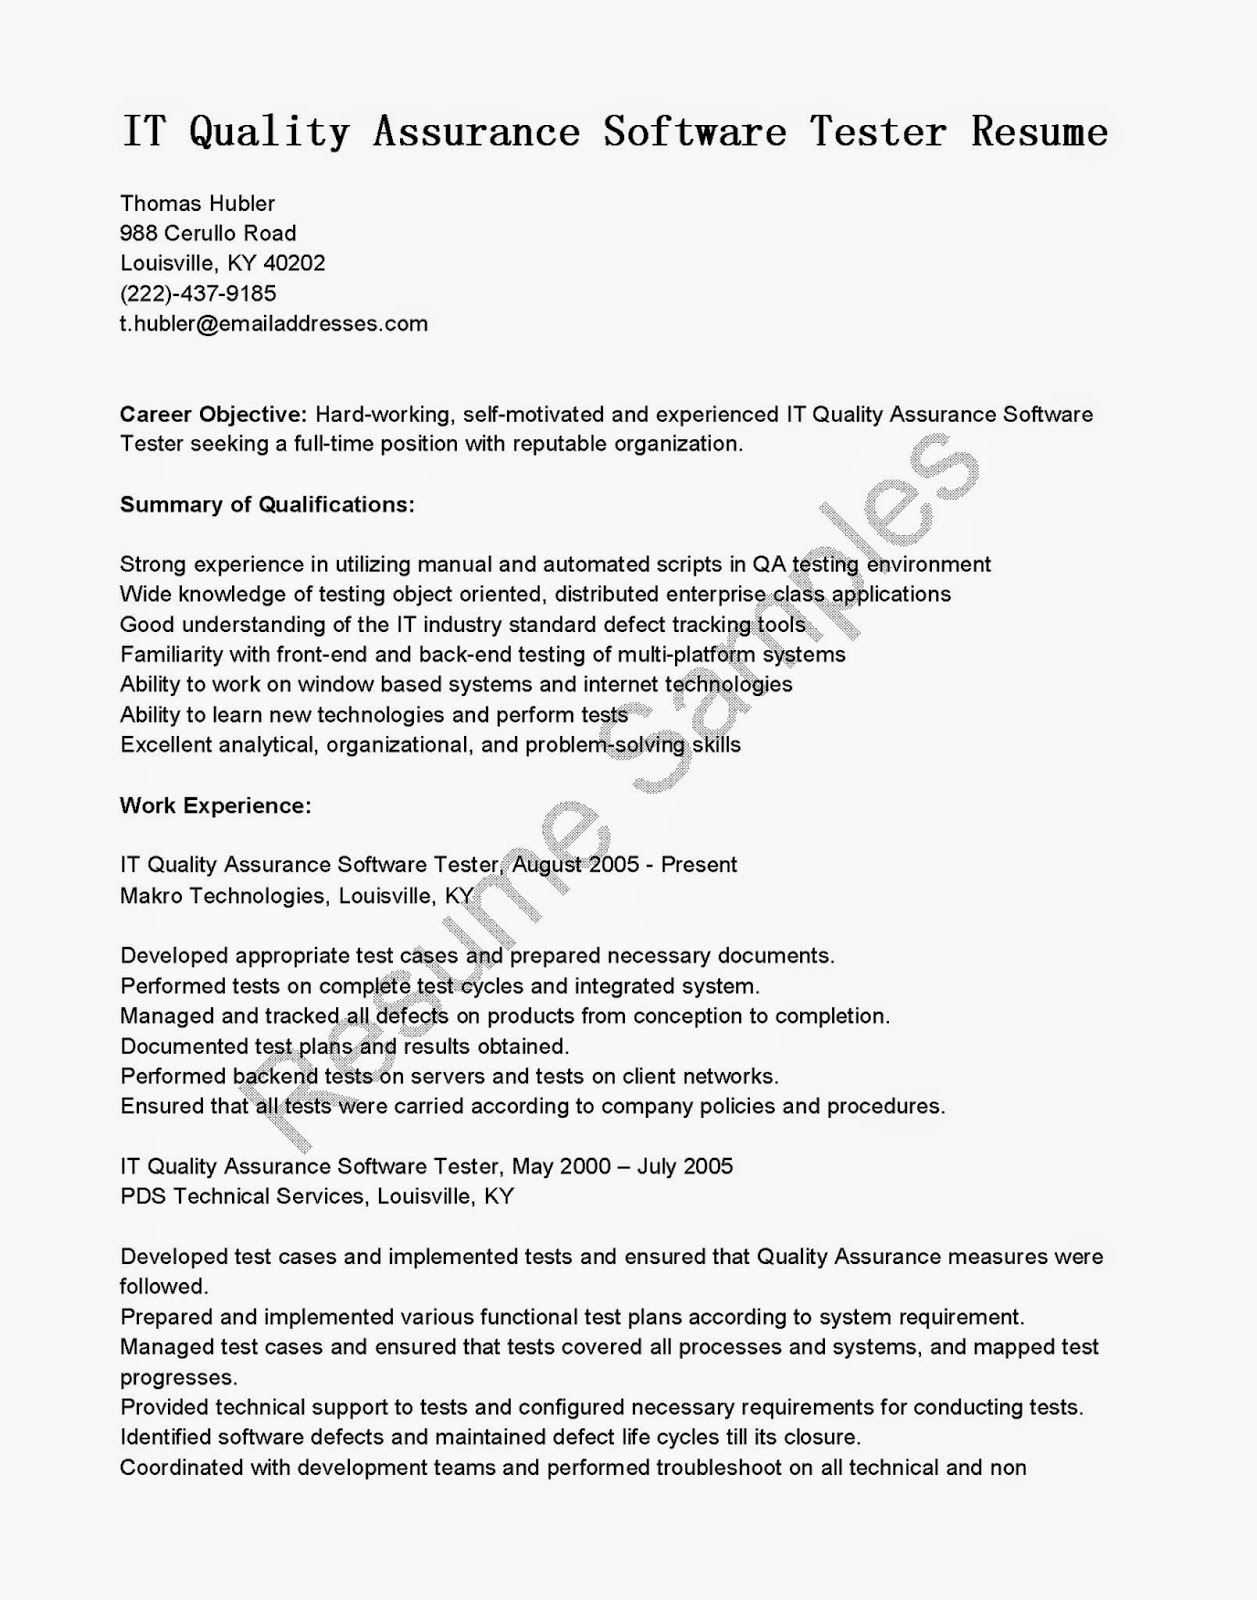 System Test Engineer Cover Letter How To Write An Essay Five Point Essay Wikibooks Open Books For